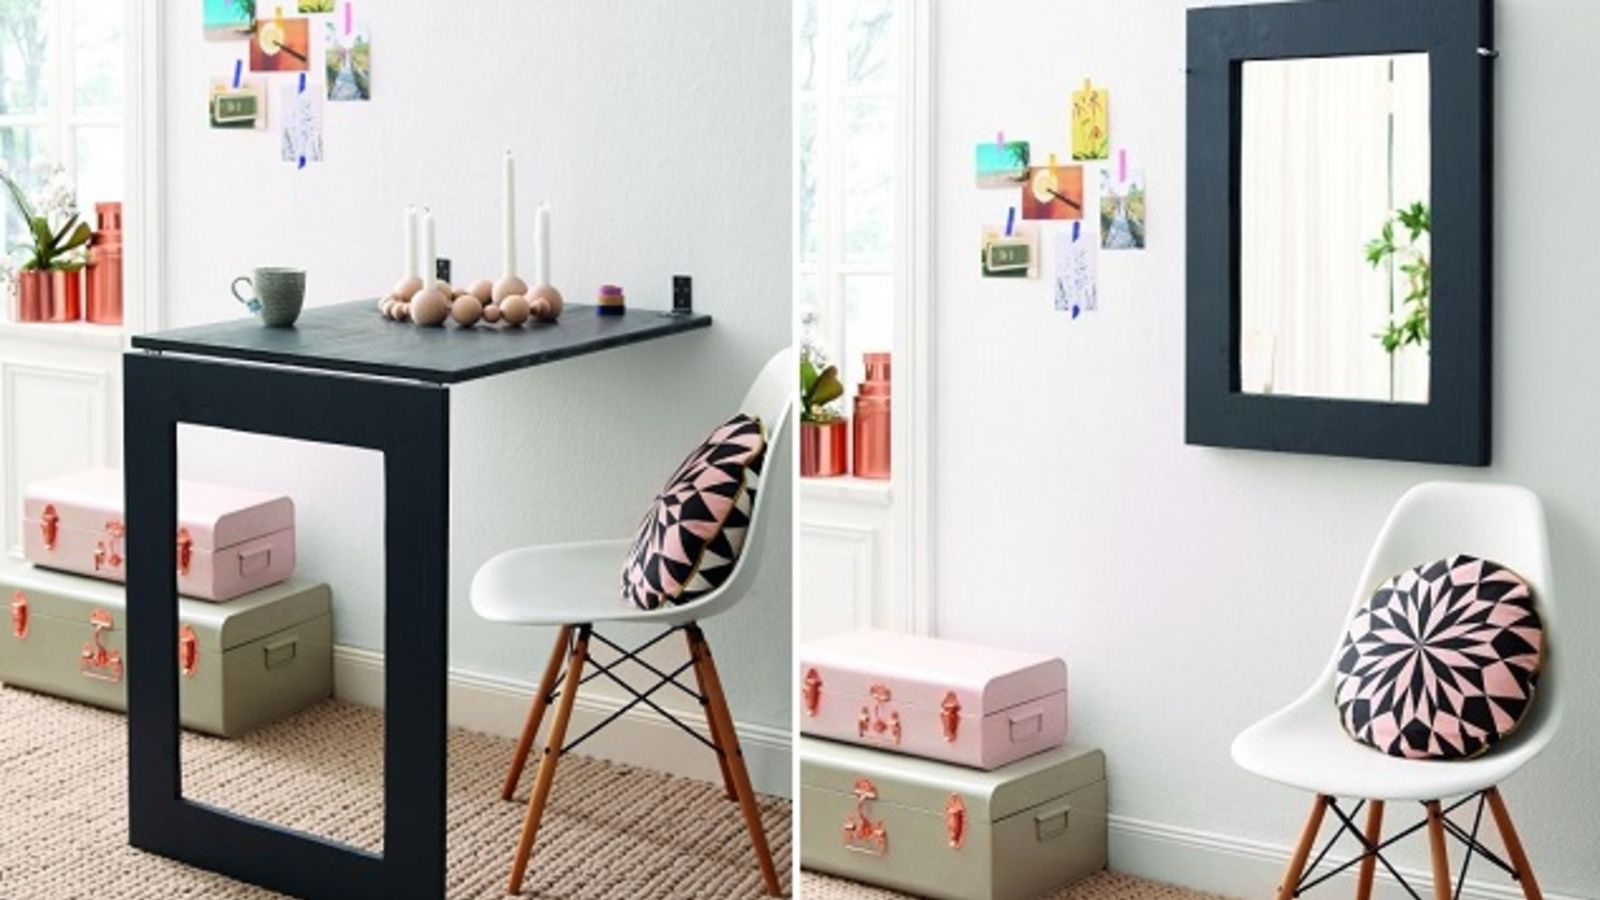 Recent Hinged Wall Mirrors Inside This Diy Desk Saves Space, Folds Up Into A Wall Mirror When Not In Use (View 16 of 20)